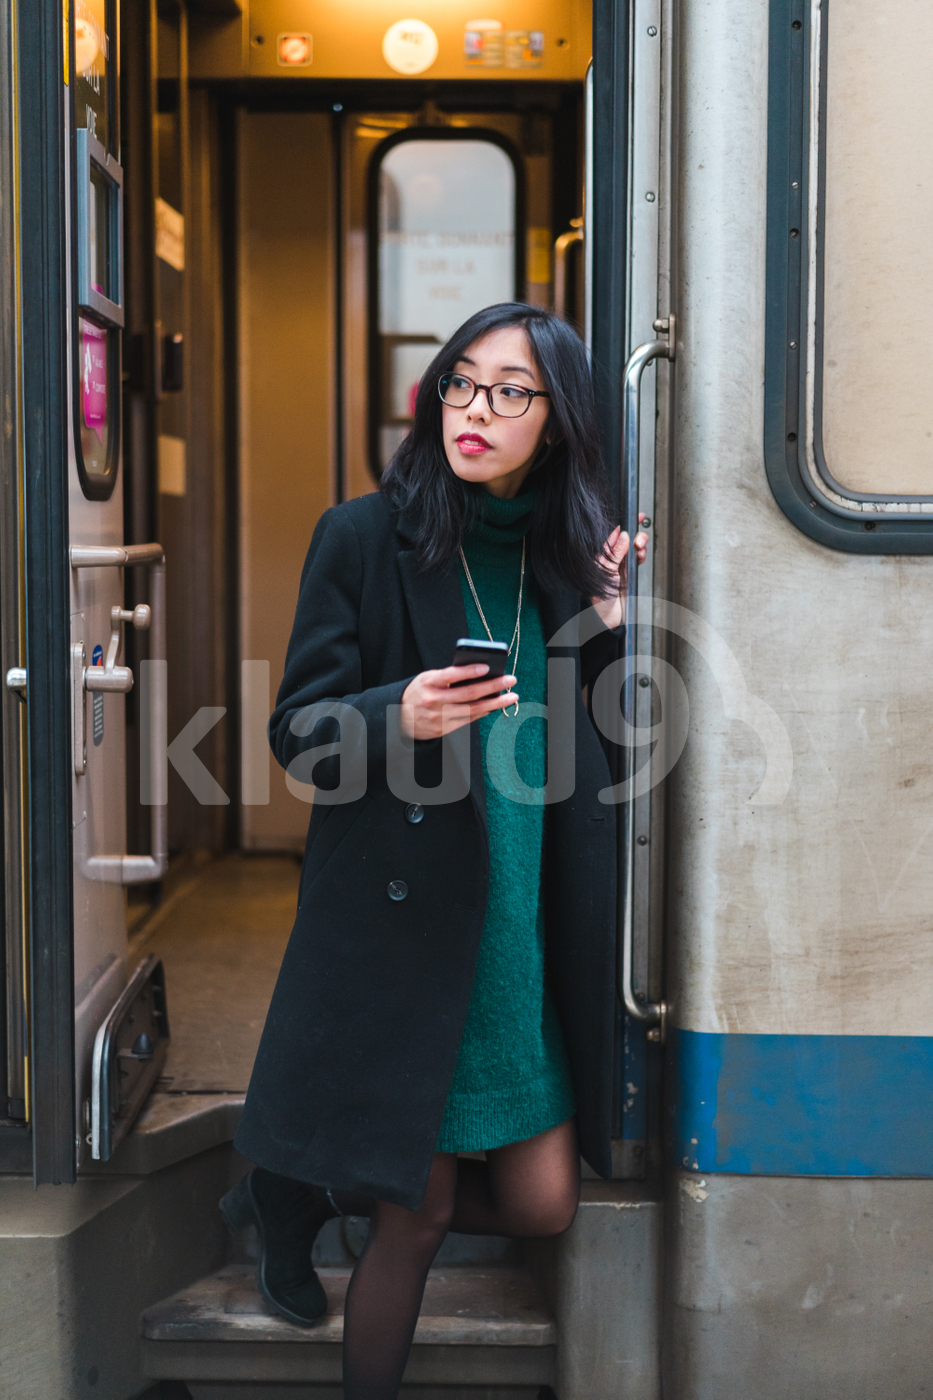 Young Asian woman stepping off a train holding her mobile